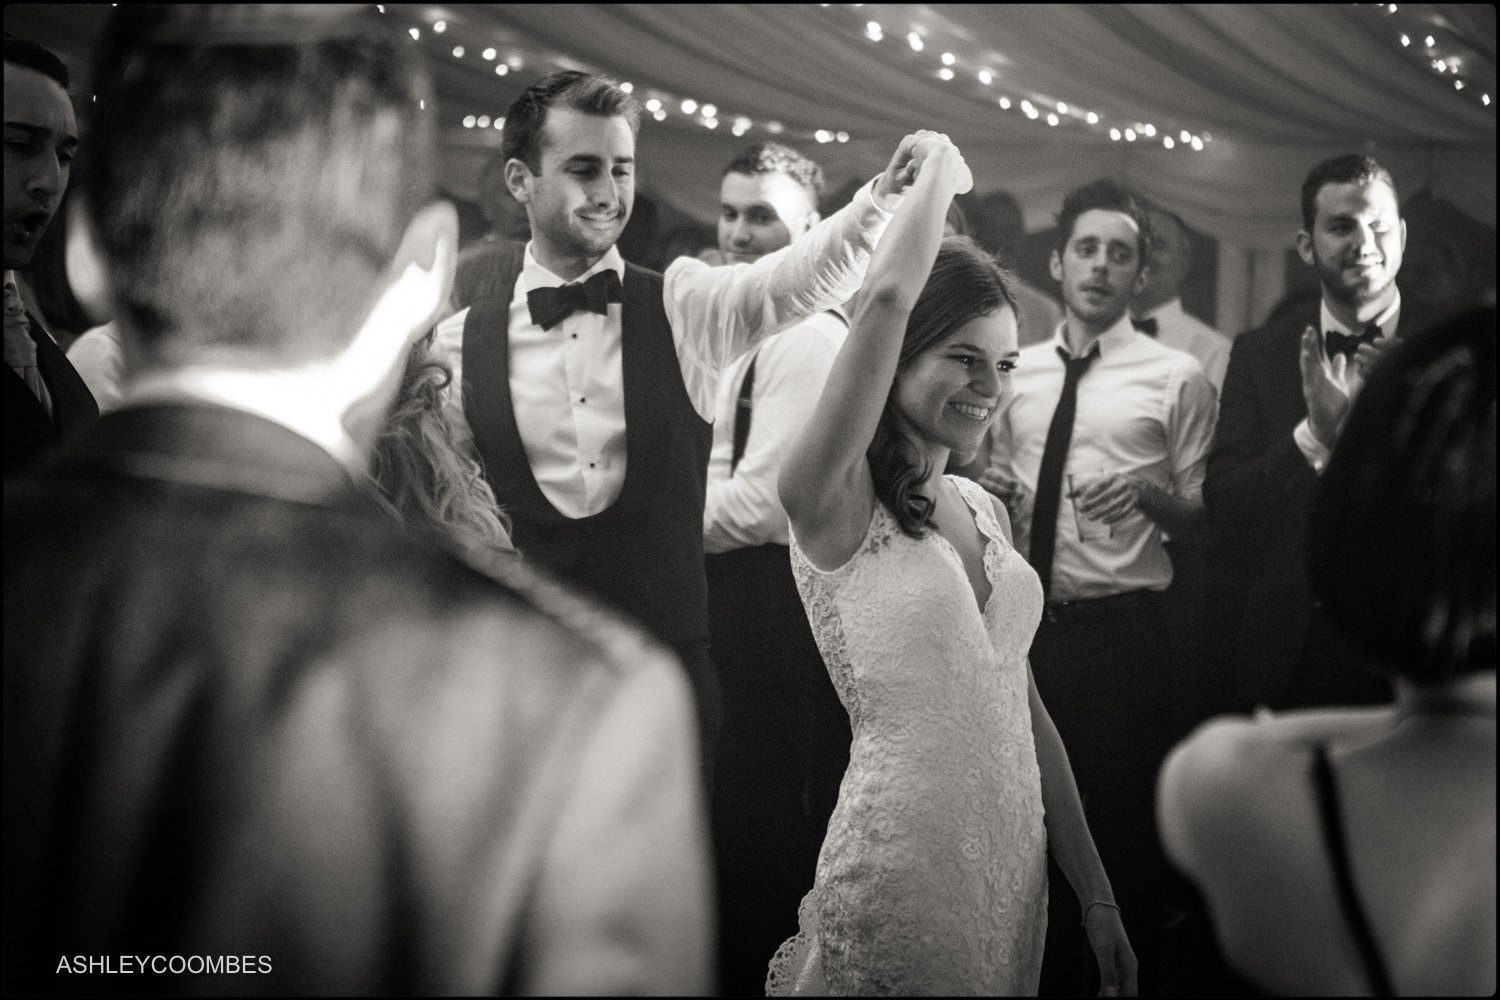 Duntreath Castle wedding dancing